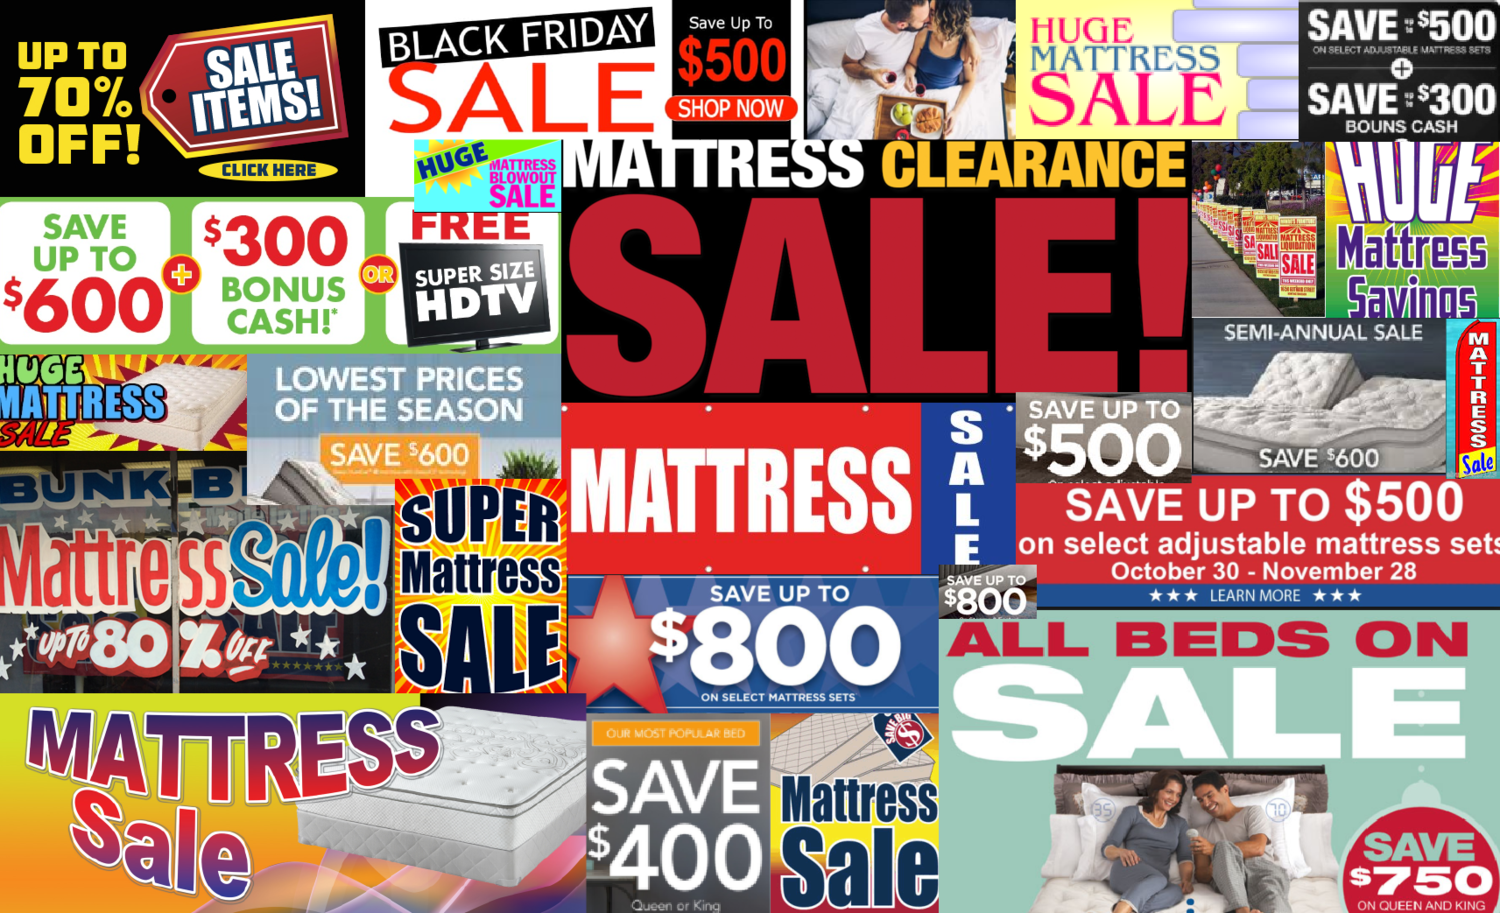 Reasons You Should Never Buy a Mattress that's $500 Off (or More).